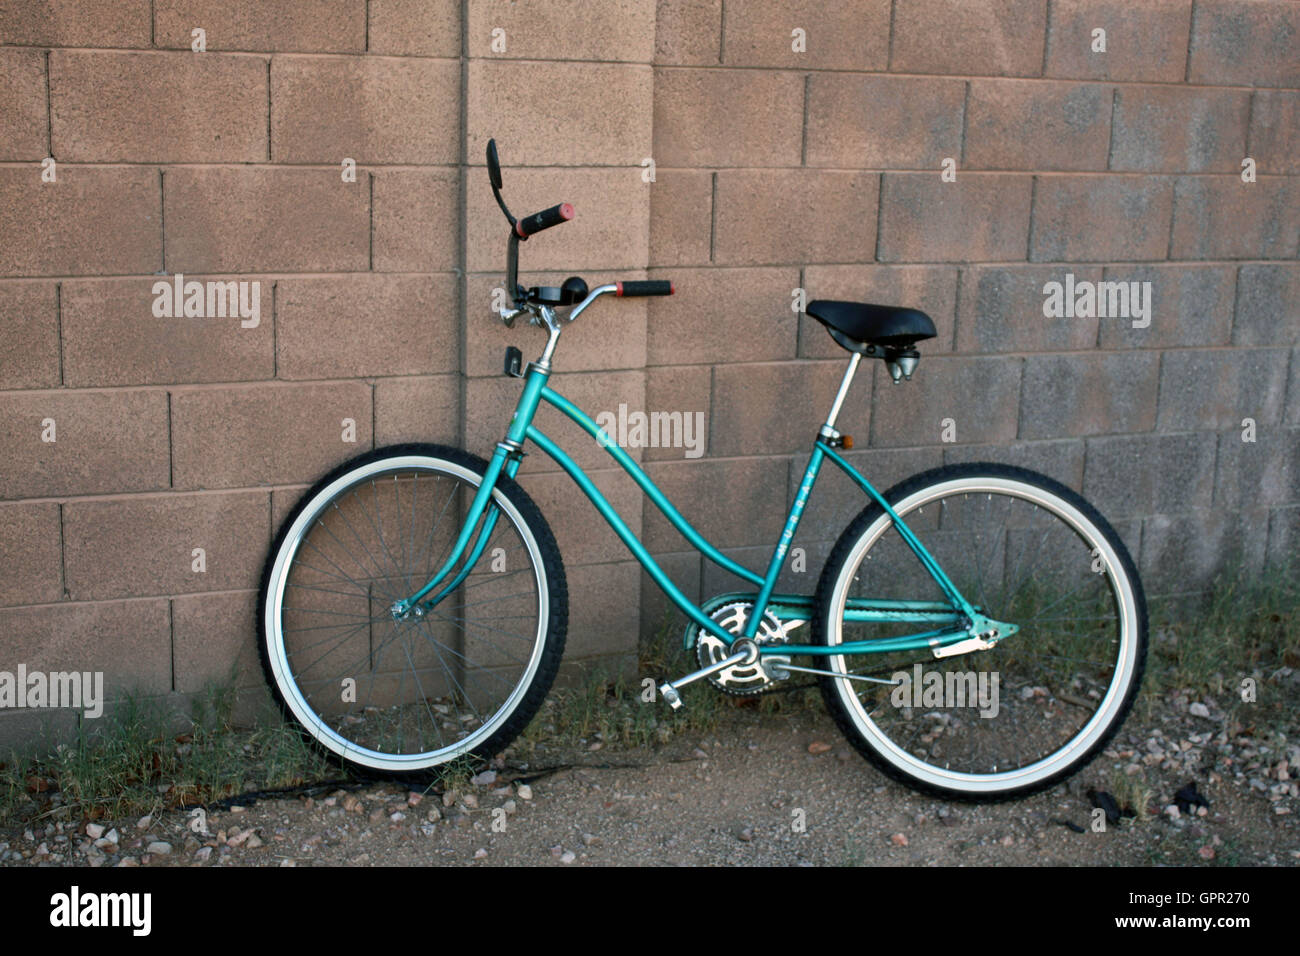 1968 'MURRAY MONTEREY' CALIFORNIA BEACH CRUISER - Stock Image